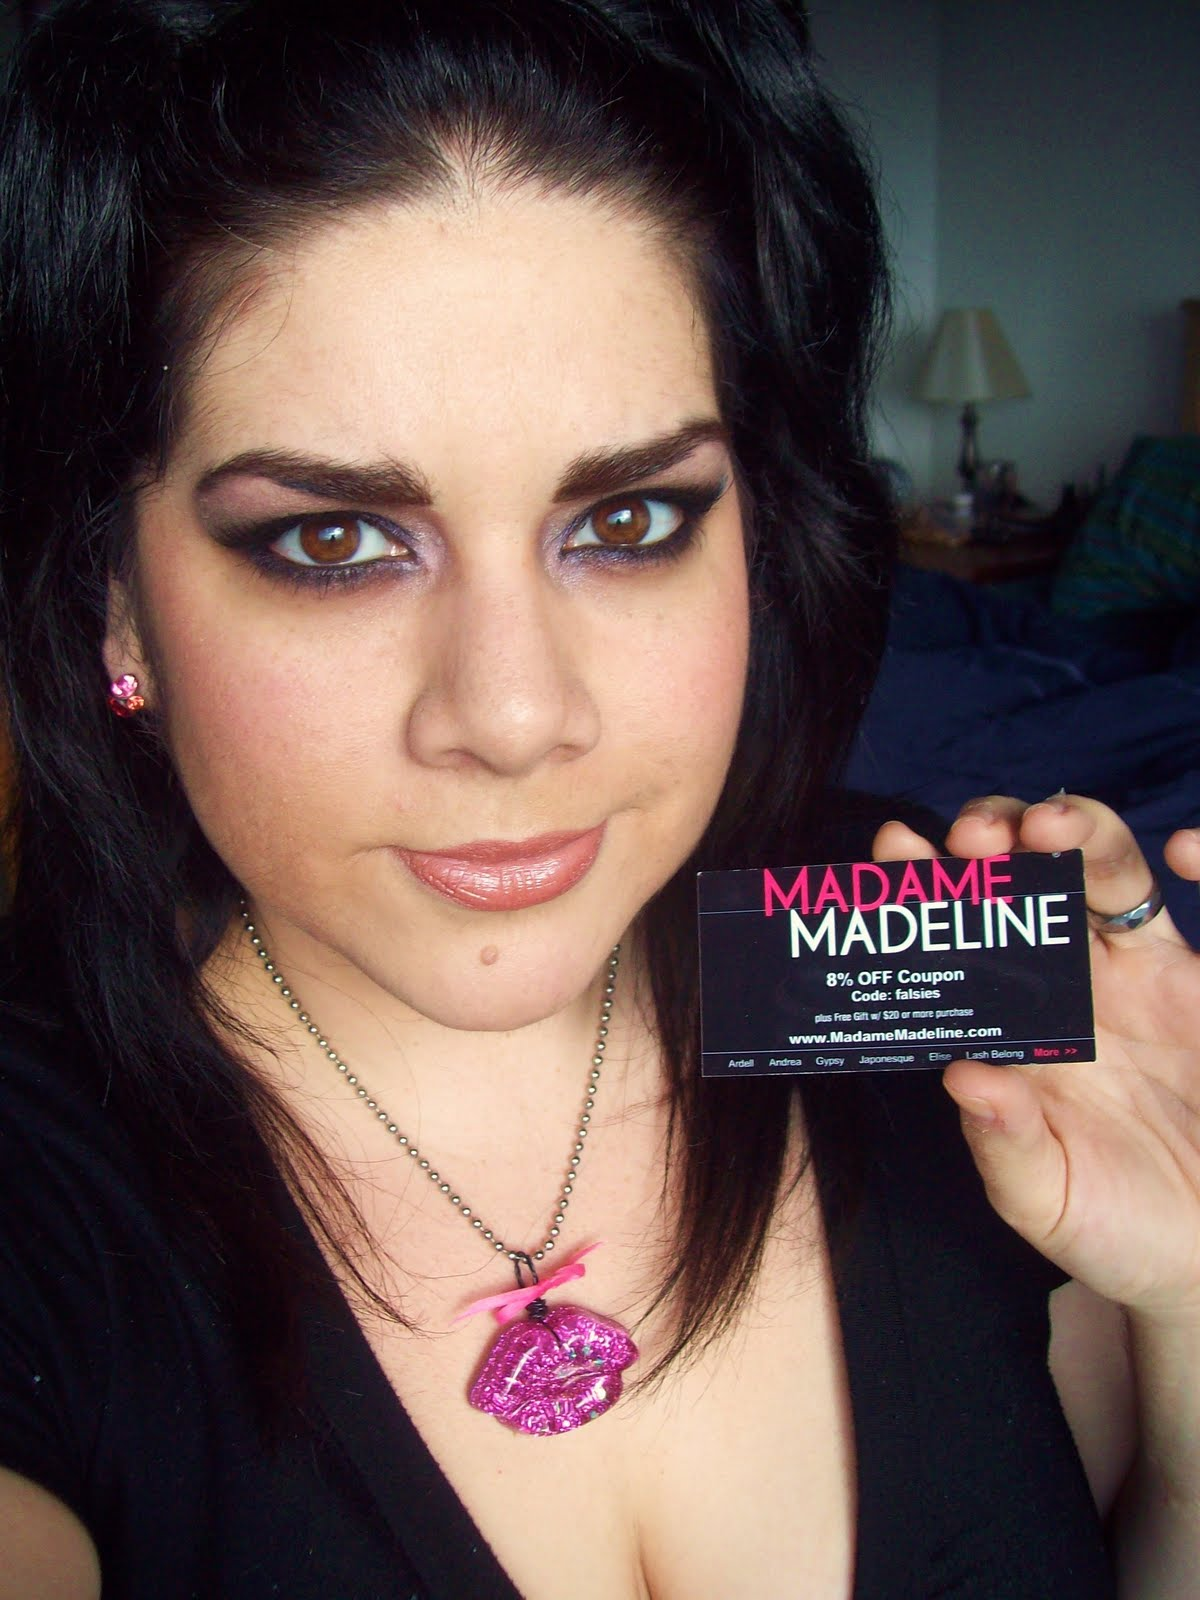 Madame Madeline - MADAME MADELINE, PO BOX , Chino, California - Rated based on Reviews